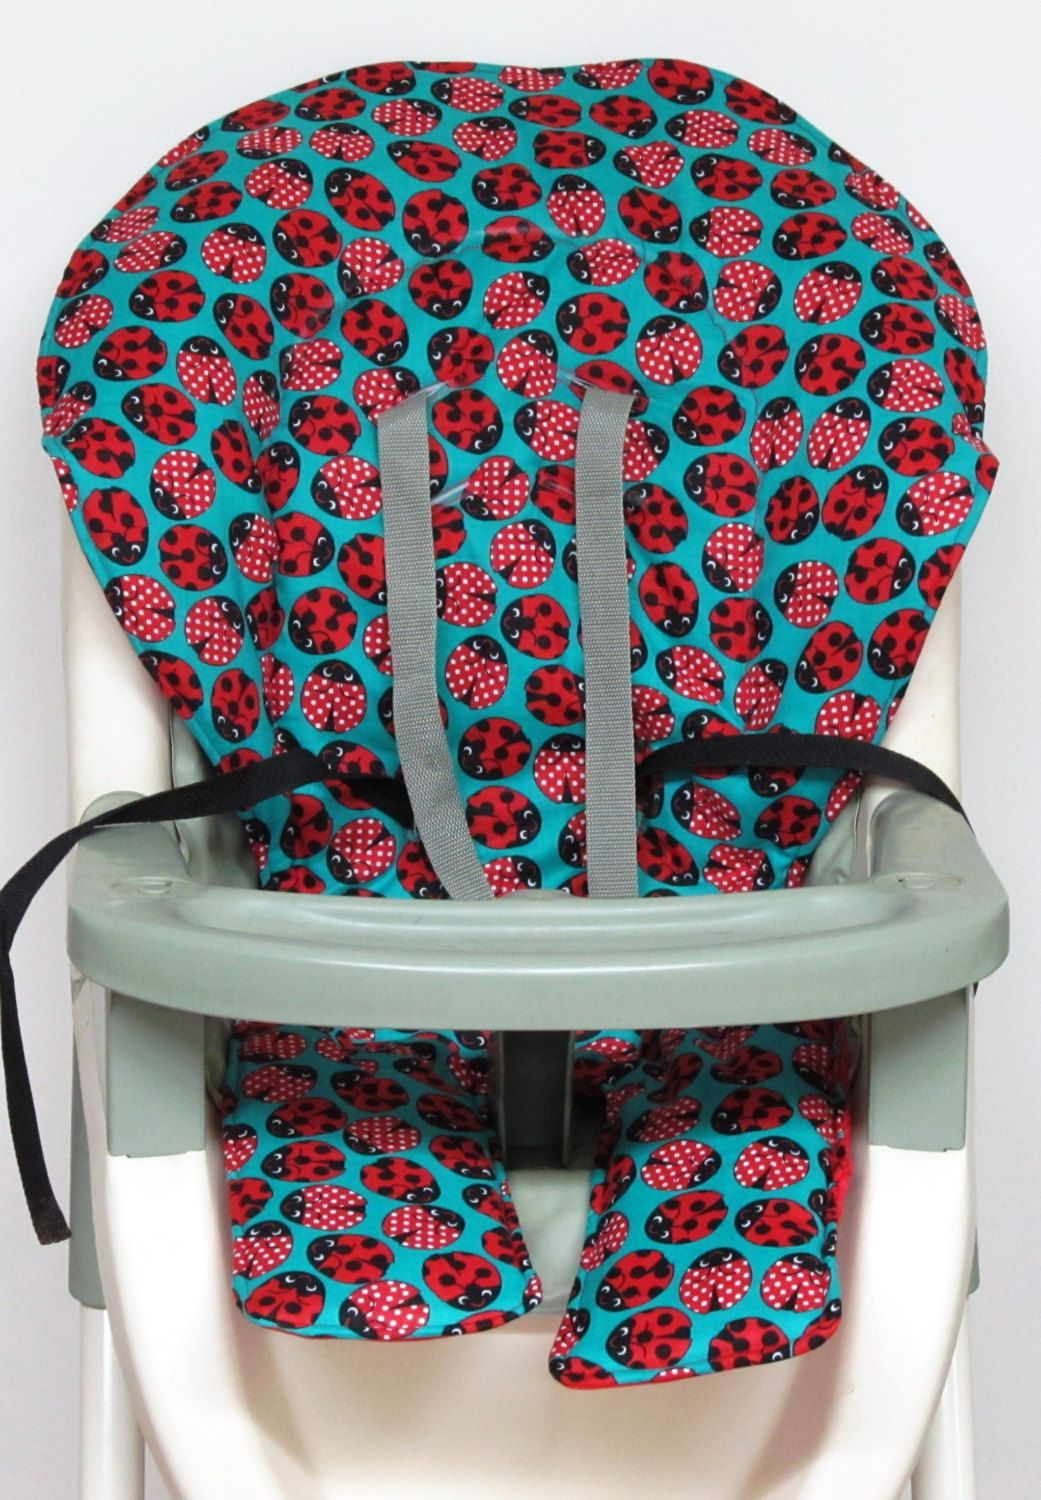 Graco high chair cover, baby accessory, replacement cover